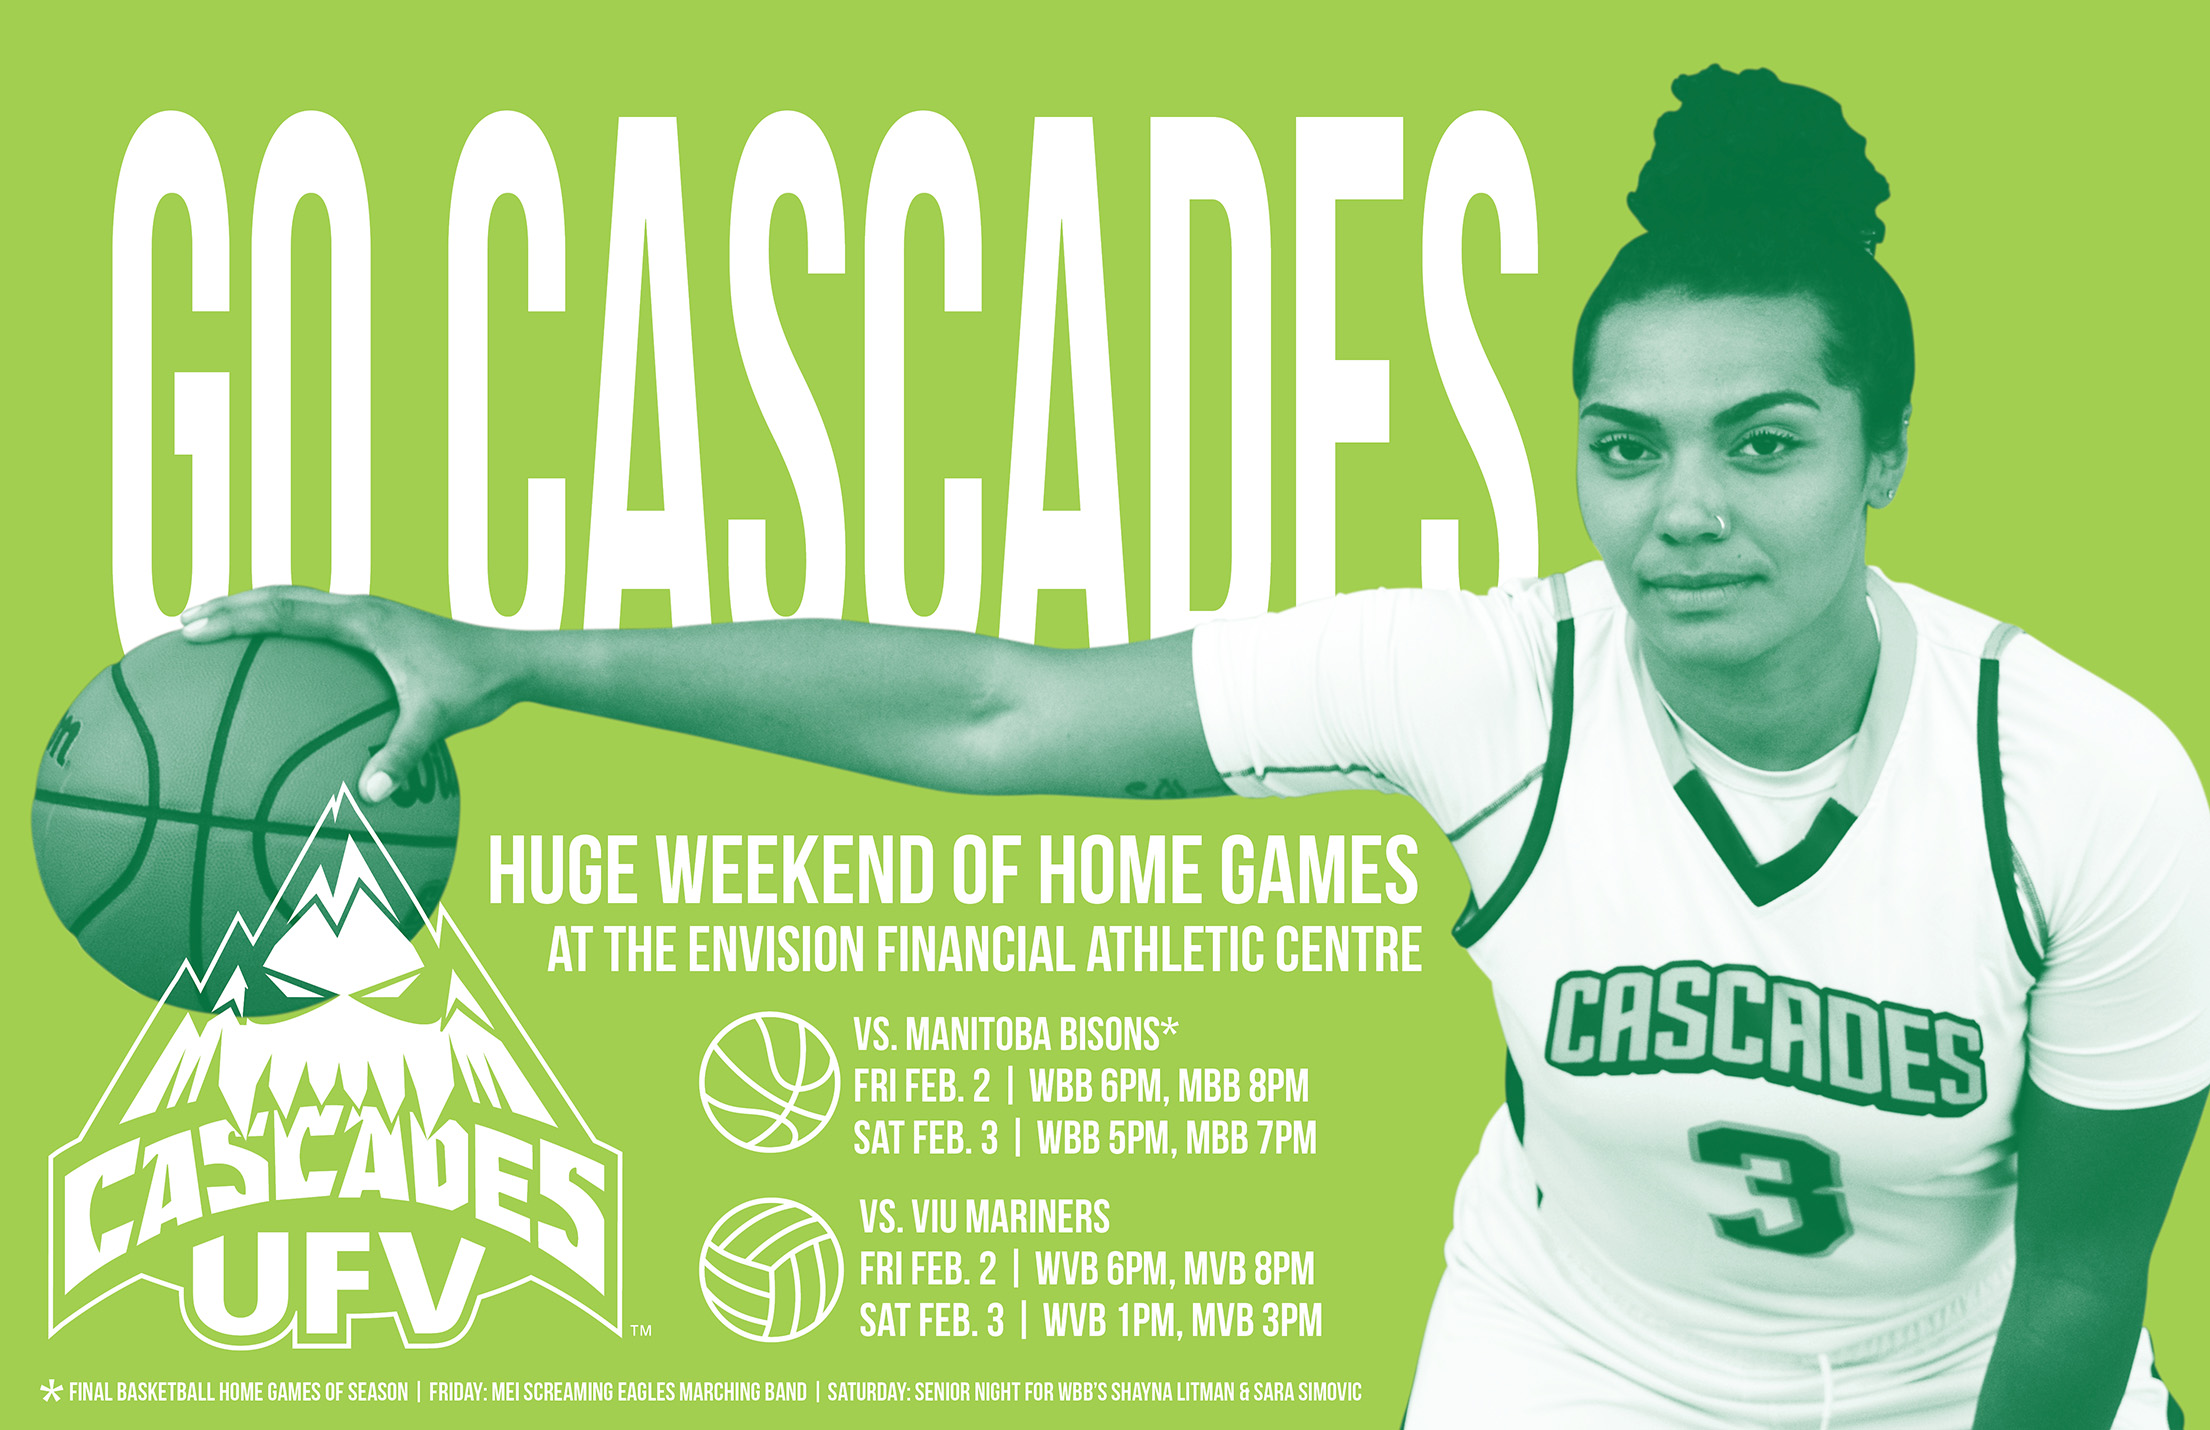 WEEKEND PREVIEW: Cascades basketball, volleyball teams in